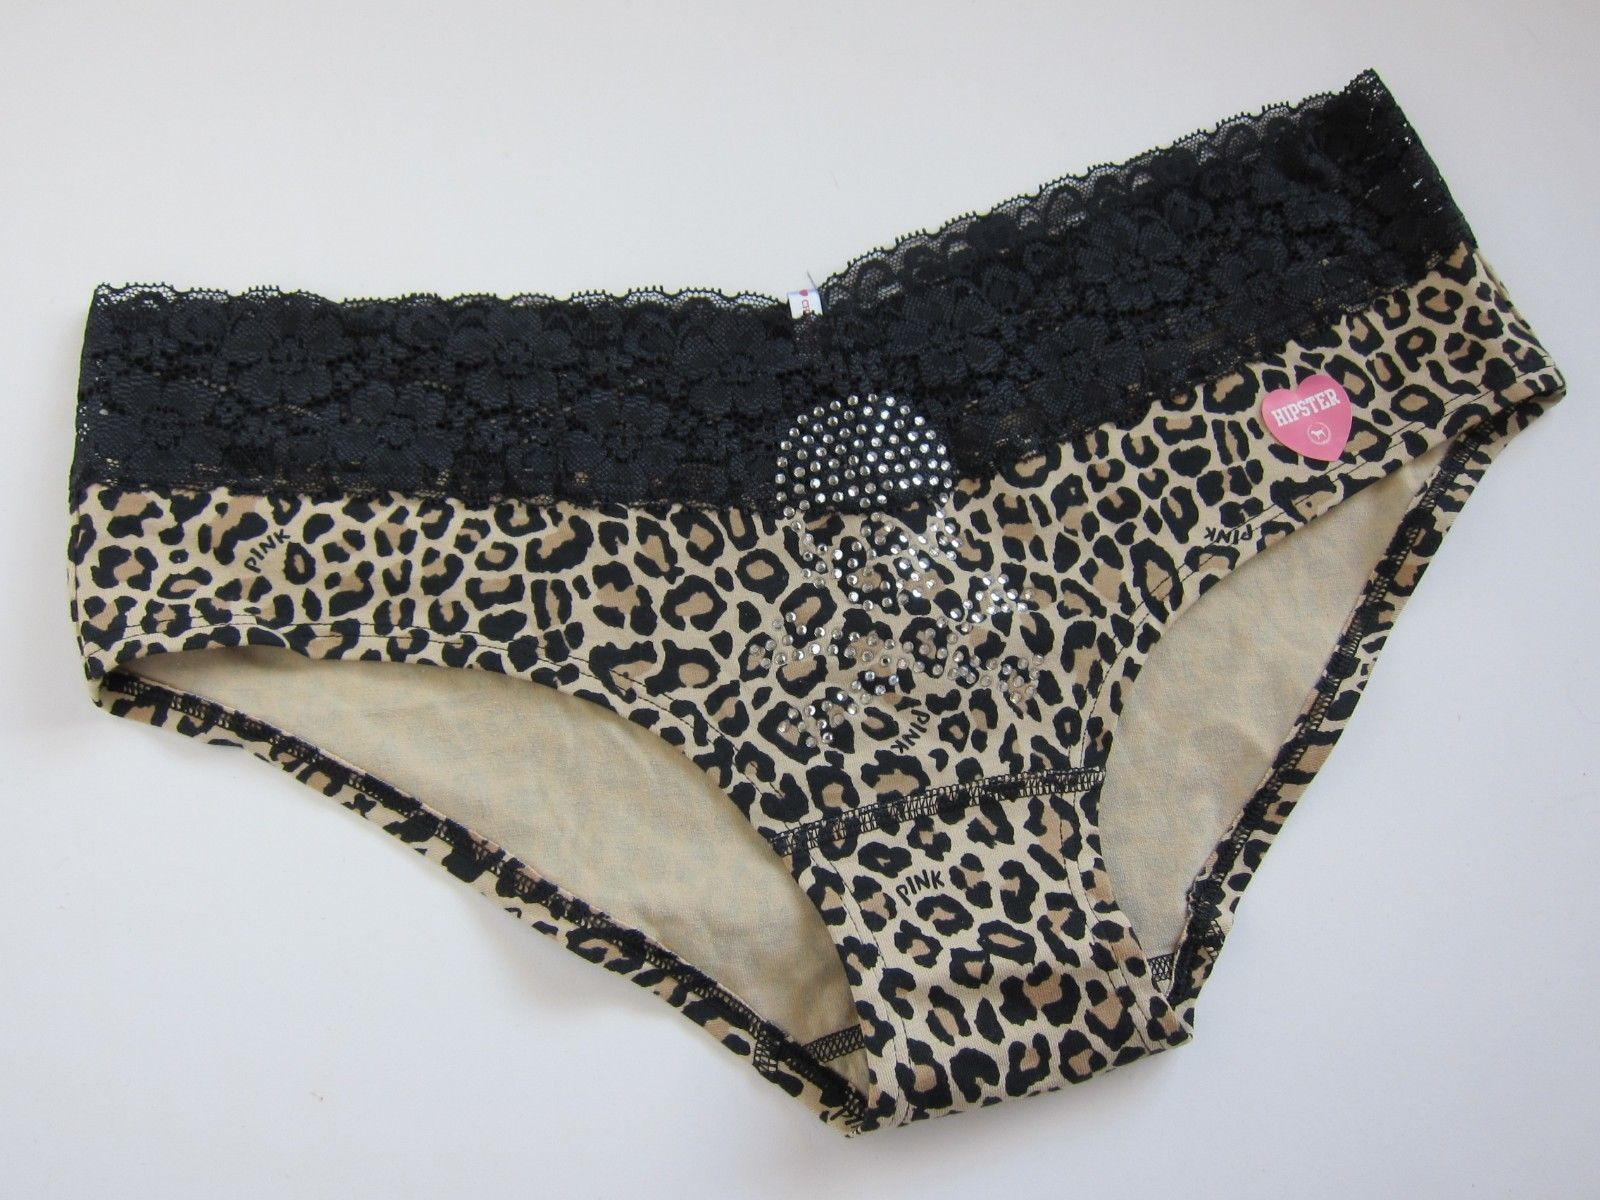 e4d834ab46b3e Victoria s Secret VTG CLASSIC PINK Extra Low Rise Hipster Panties LARGE -   12.86